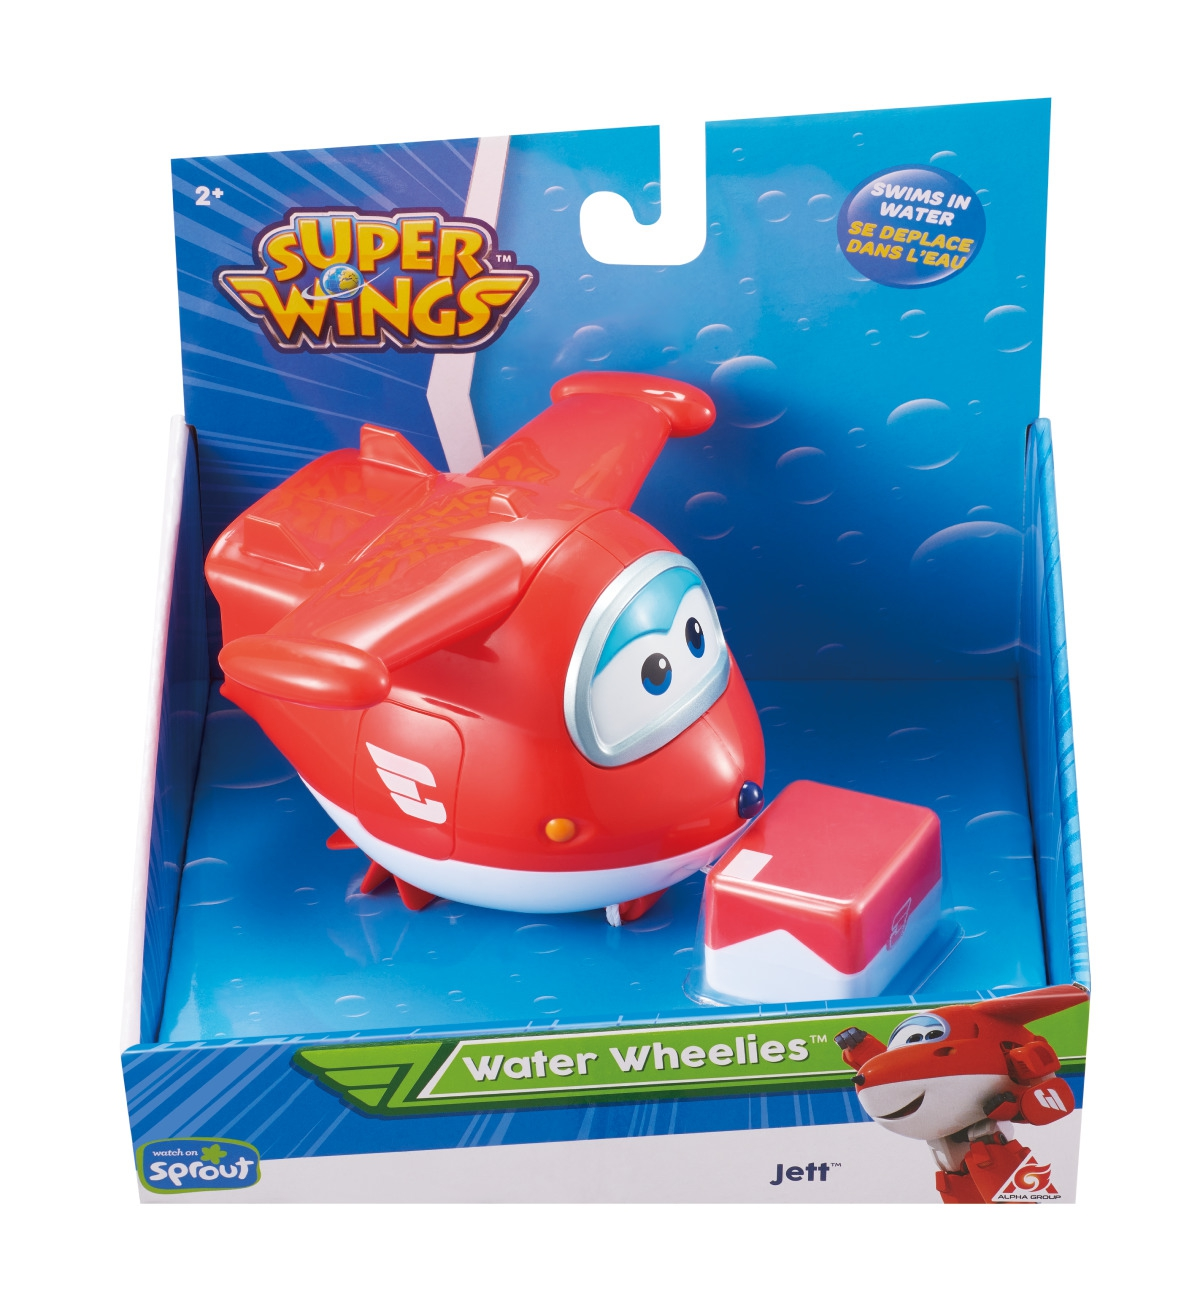 ALPHA SUPER WINGS Vesilentokone Jett